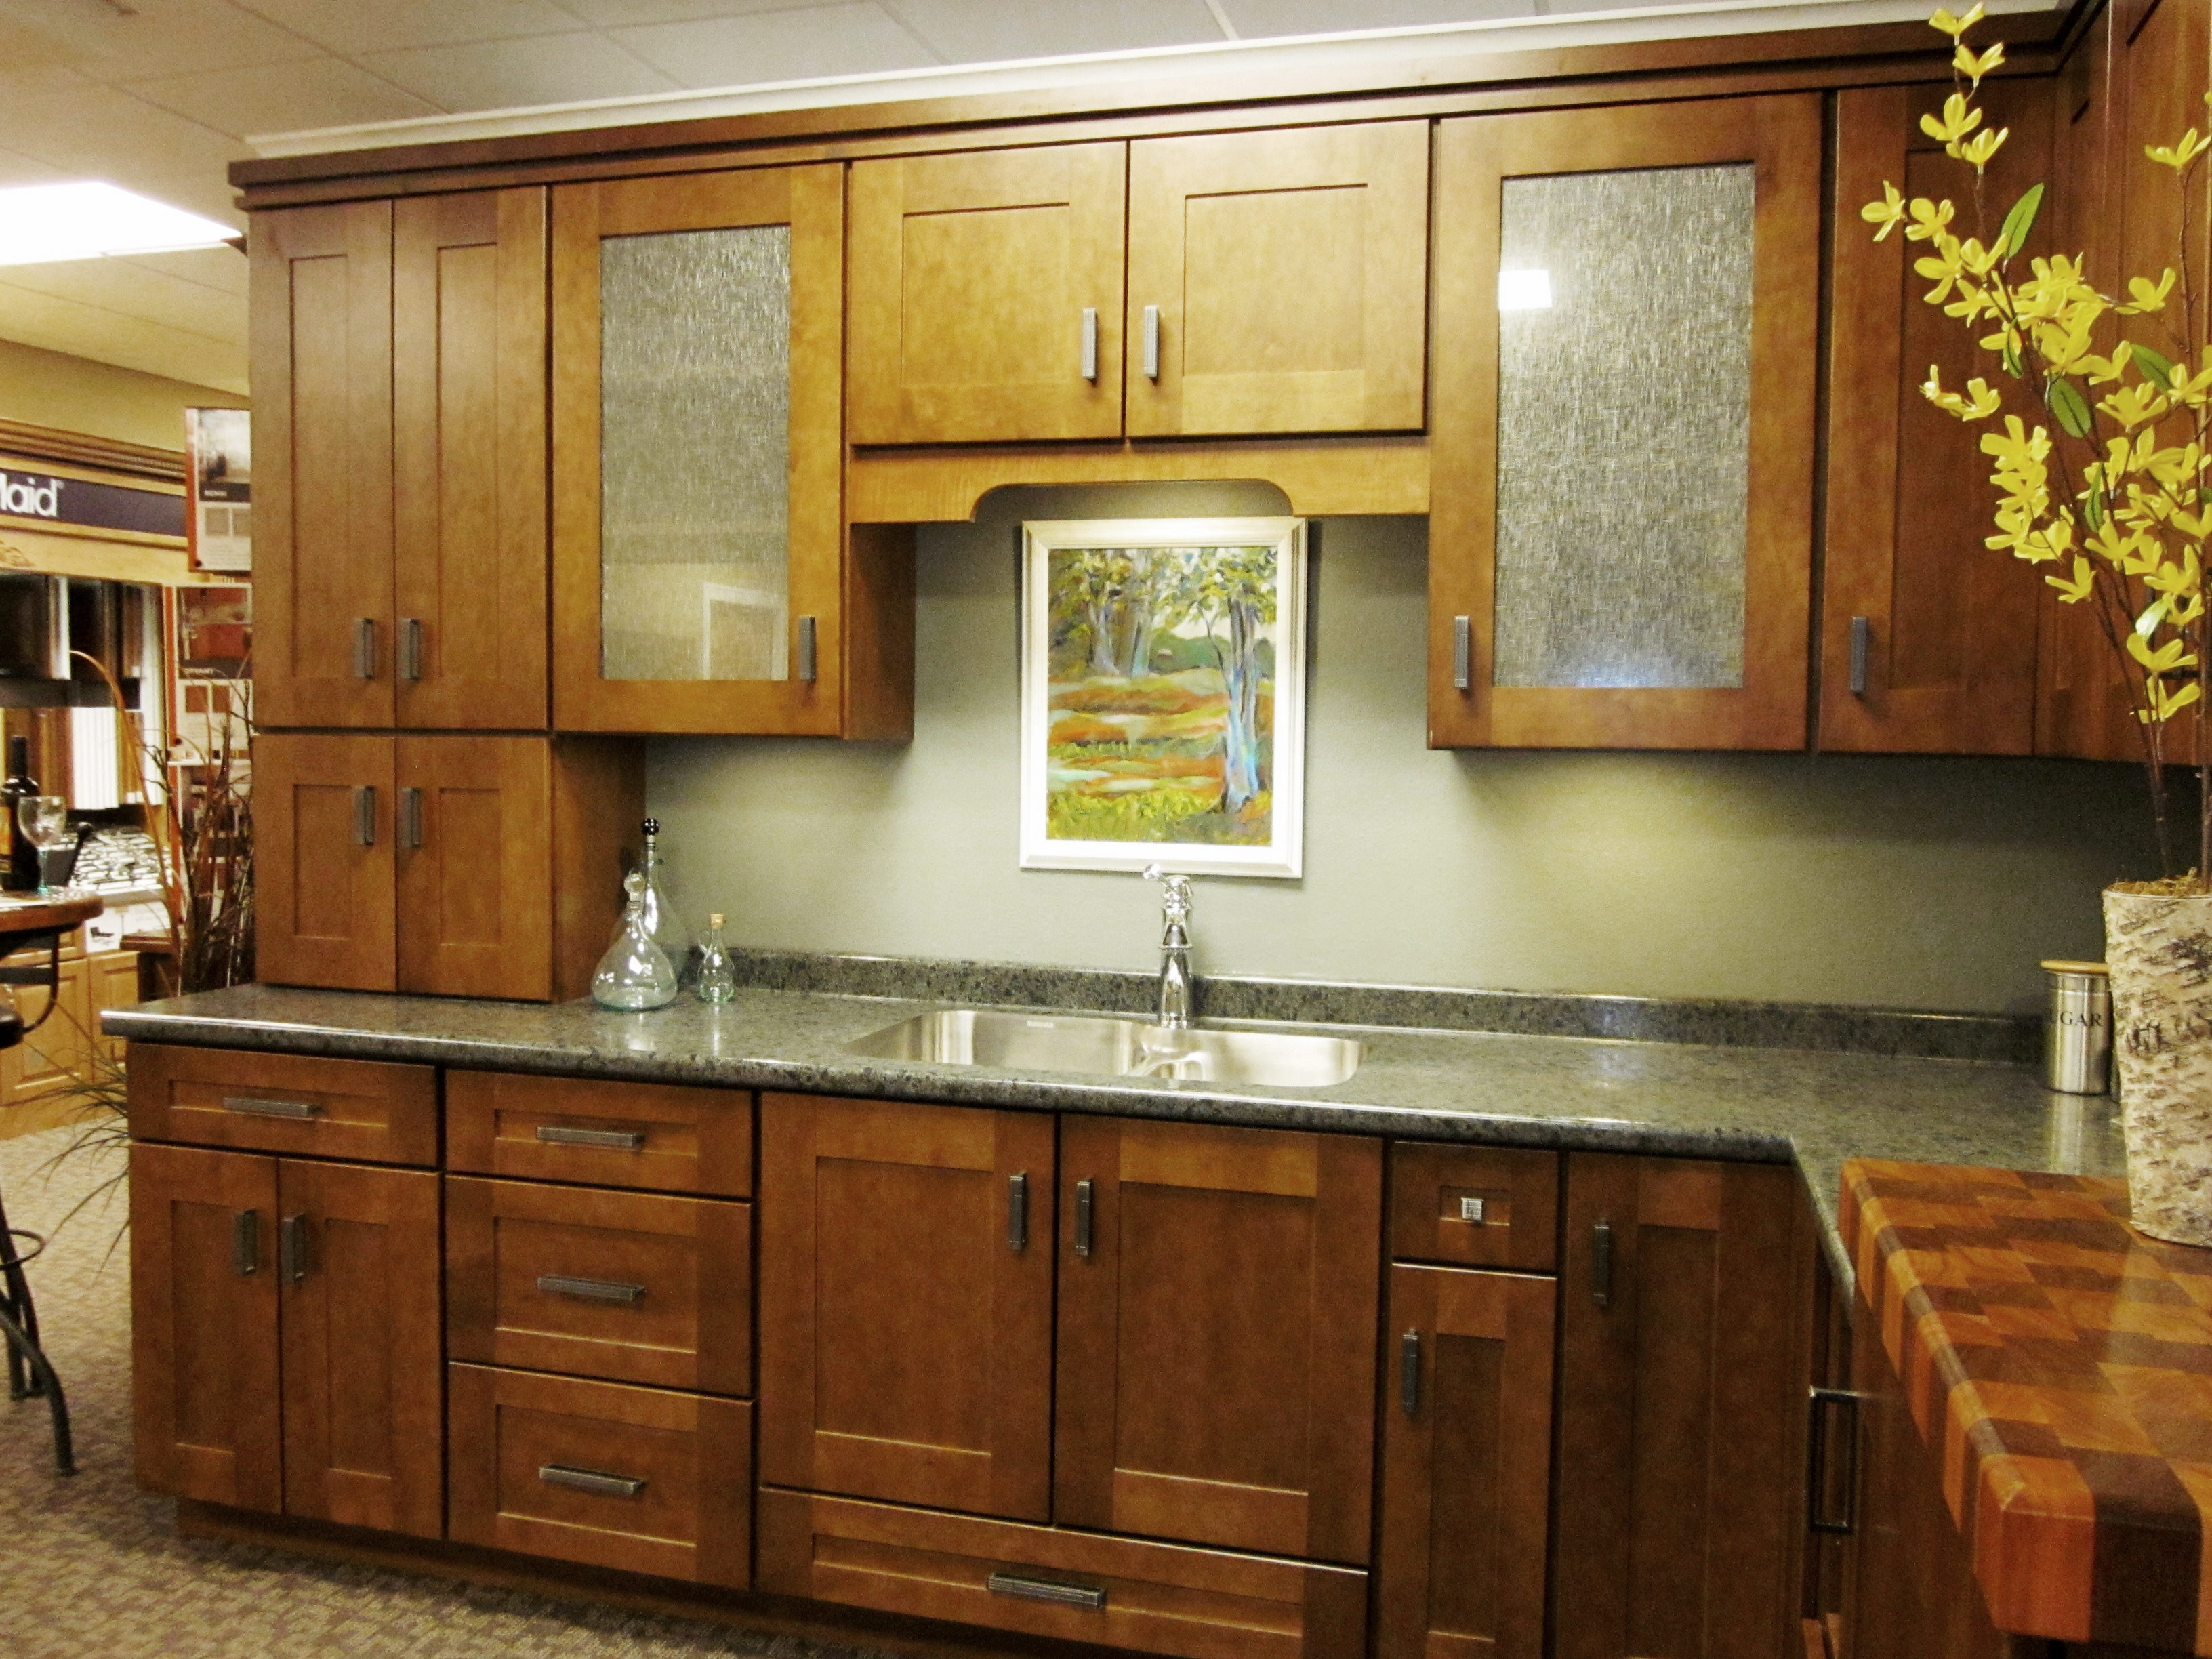 Permalink to Madison Wi Kitchen Cabinets